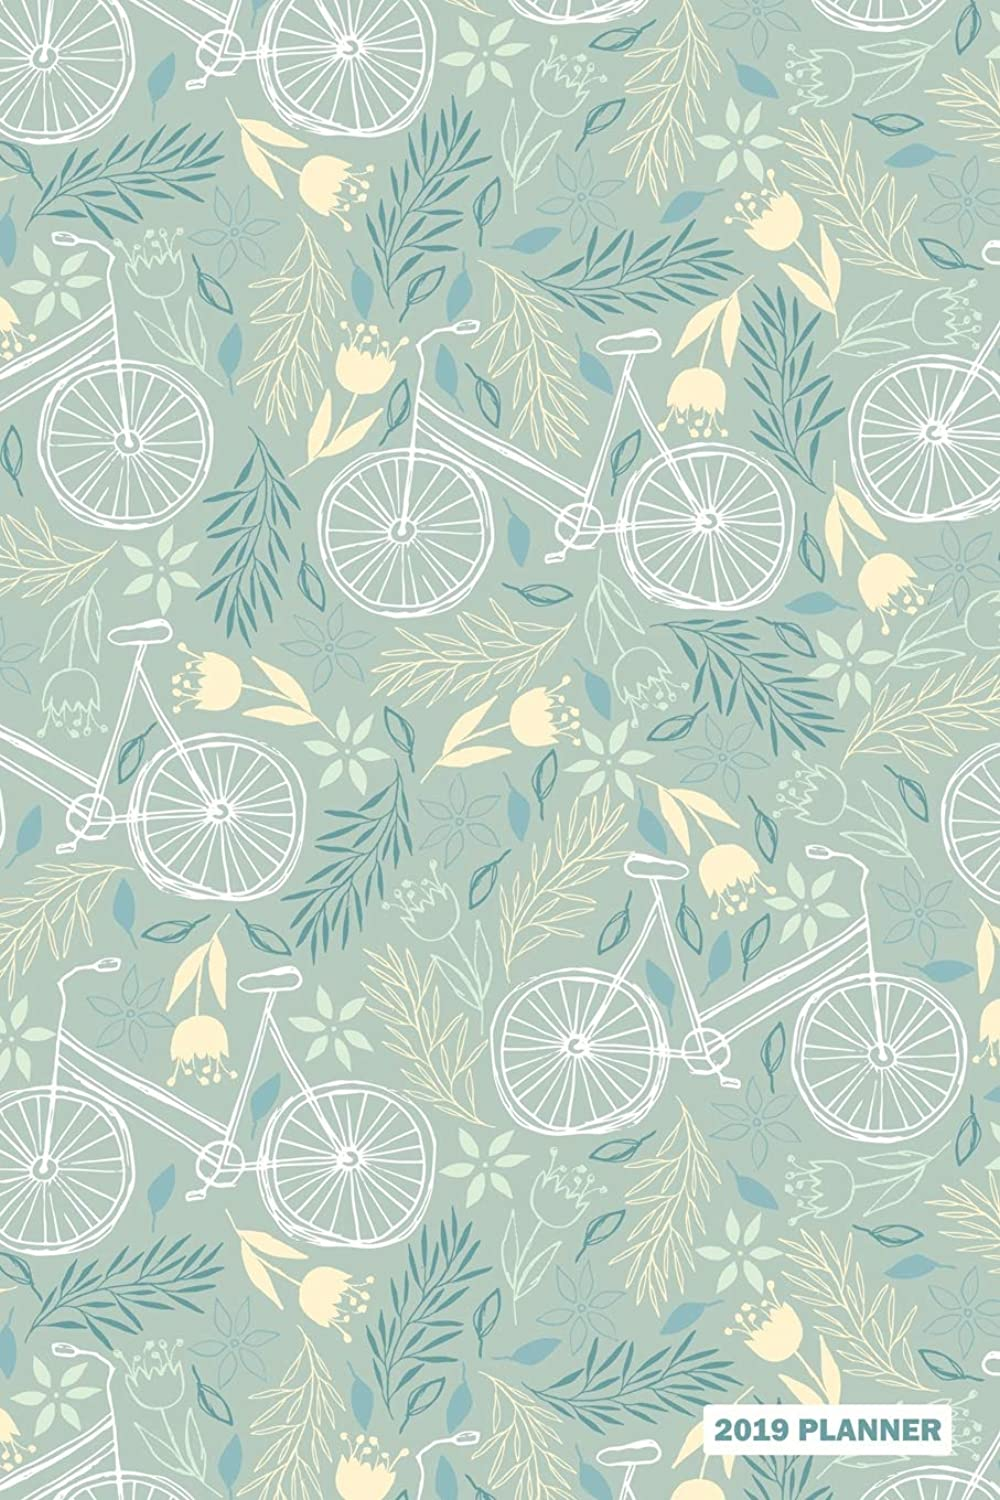 2019 Planner: Daily Weekly & Monthly Organizer Bicycle Cyclist Bike Cycling Pattern Cover